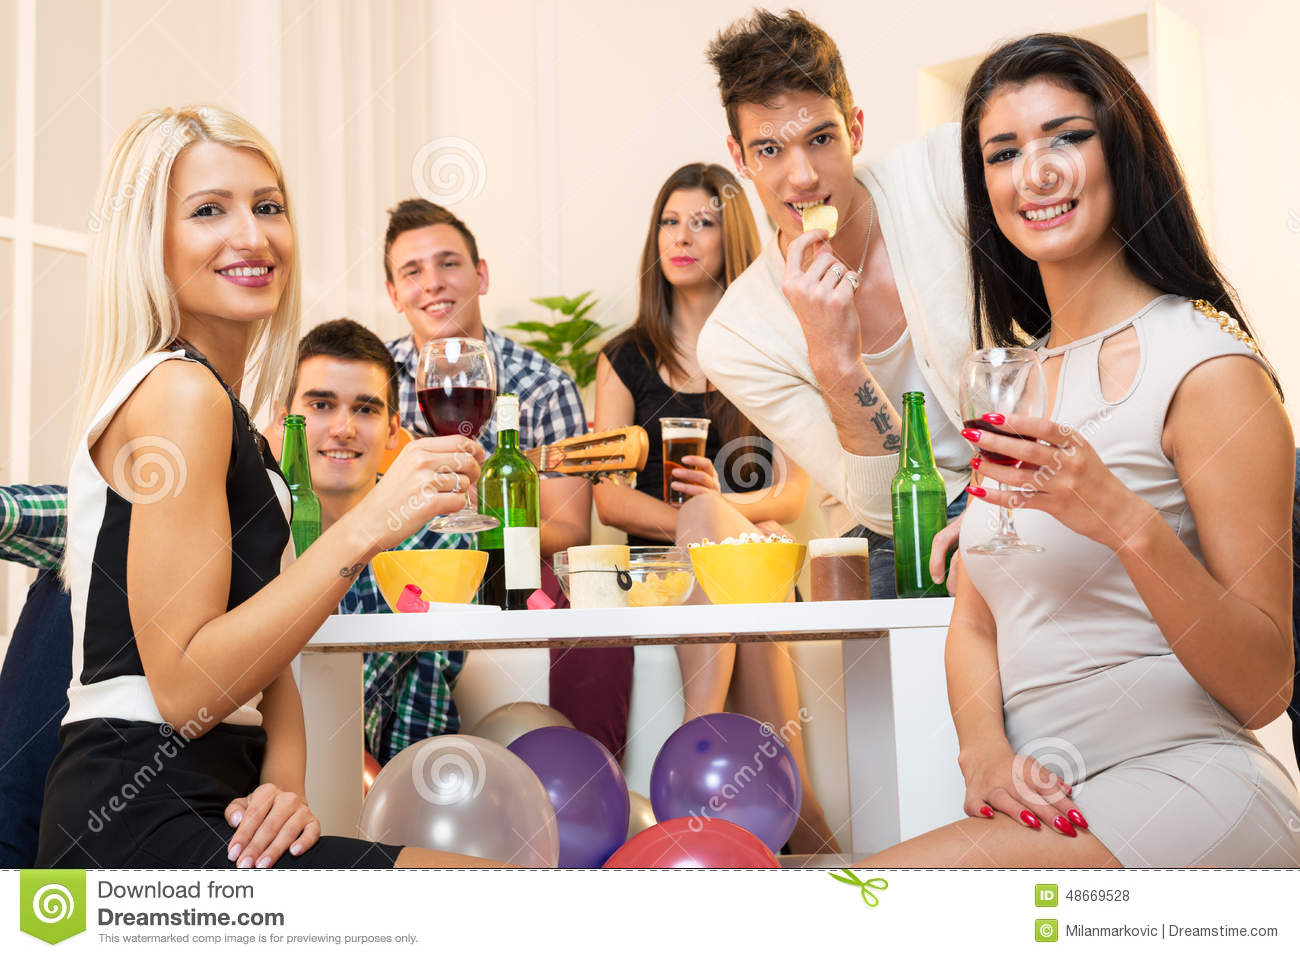 People Partying At A House | www.imgkid.com - The Image ...